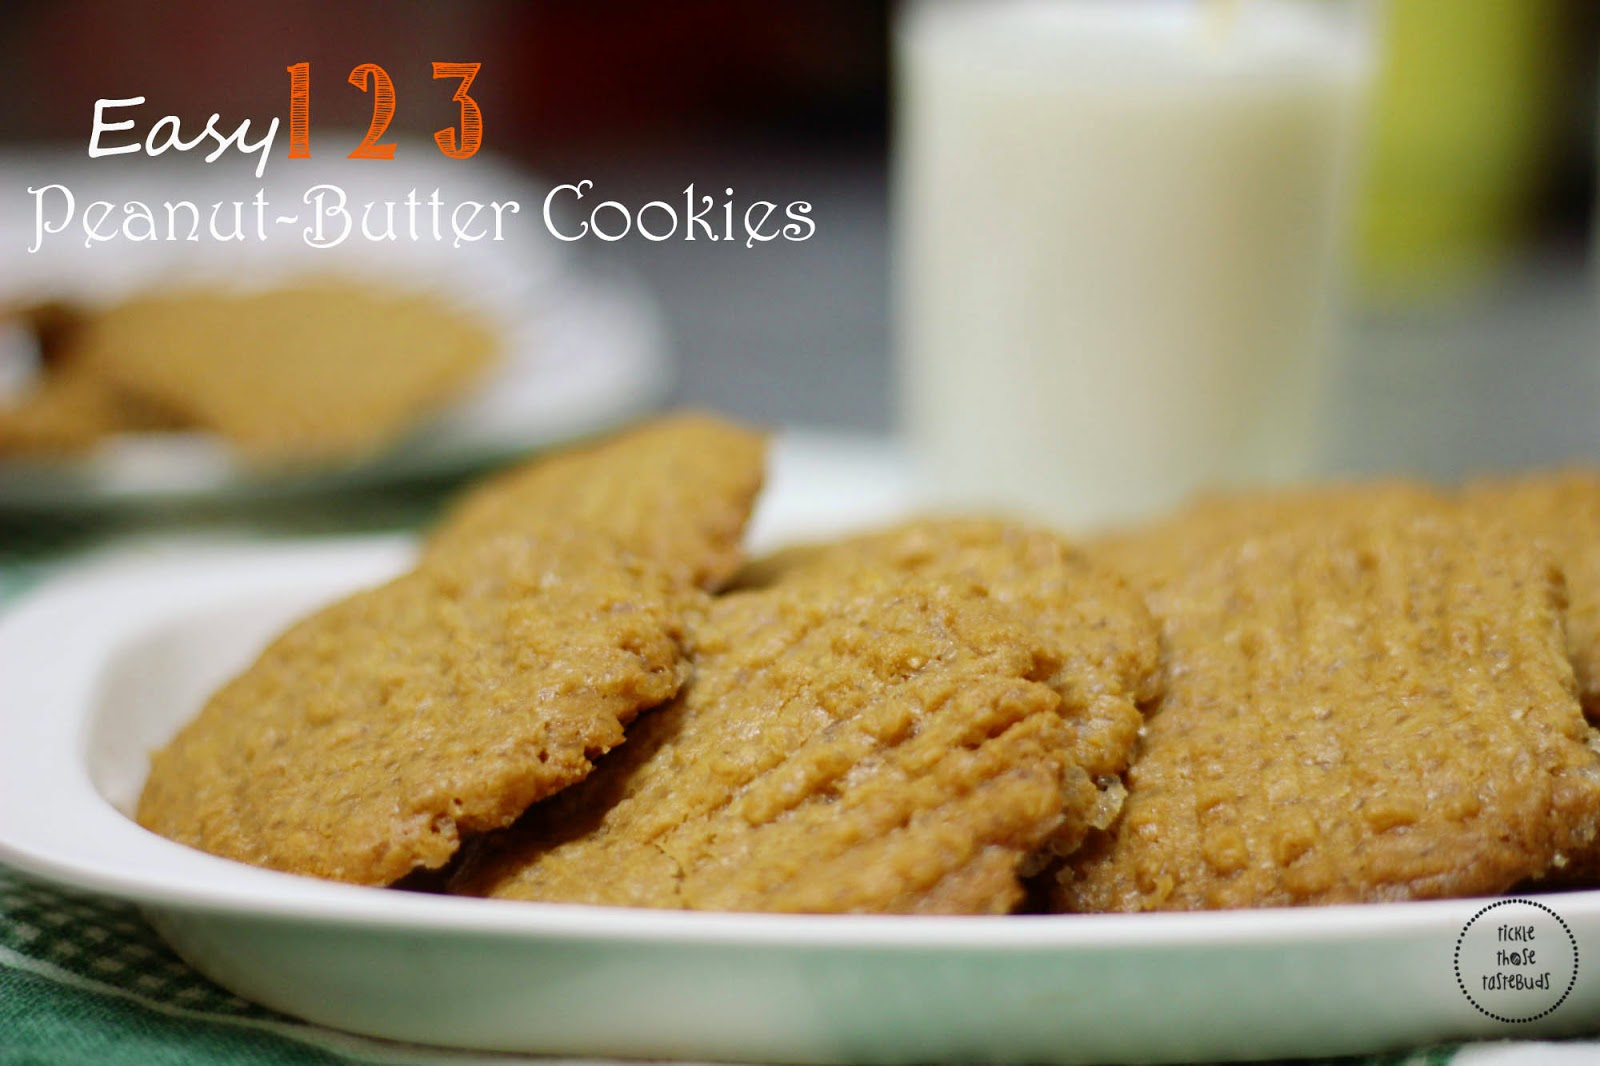 Easy-123-Peanut-Butter-Cookies-Ticklethosetastebuds